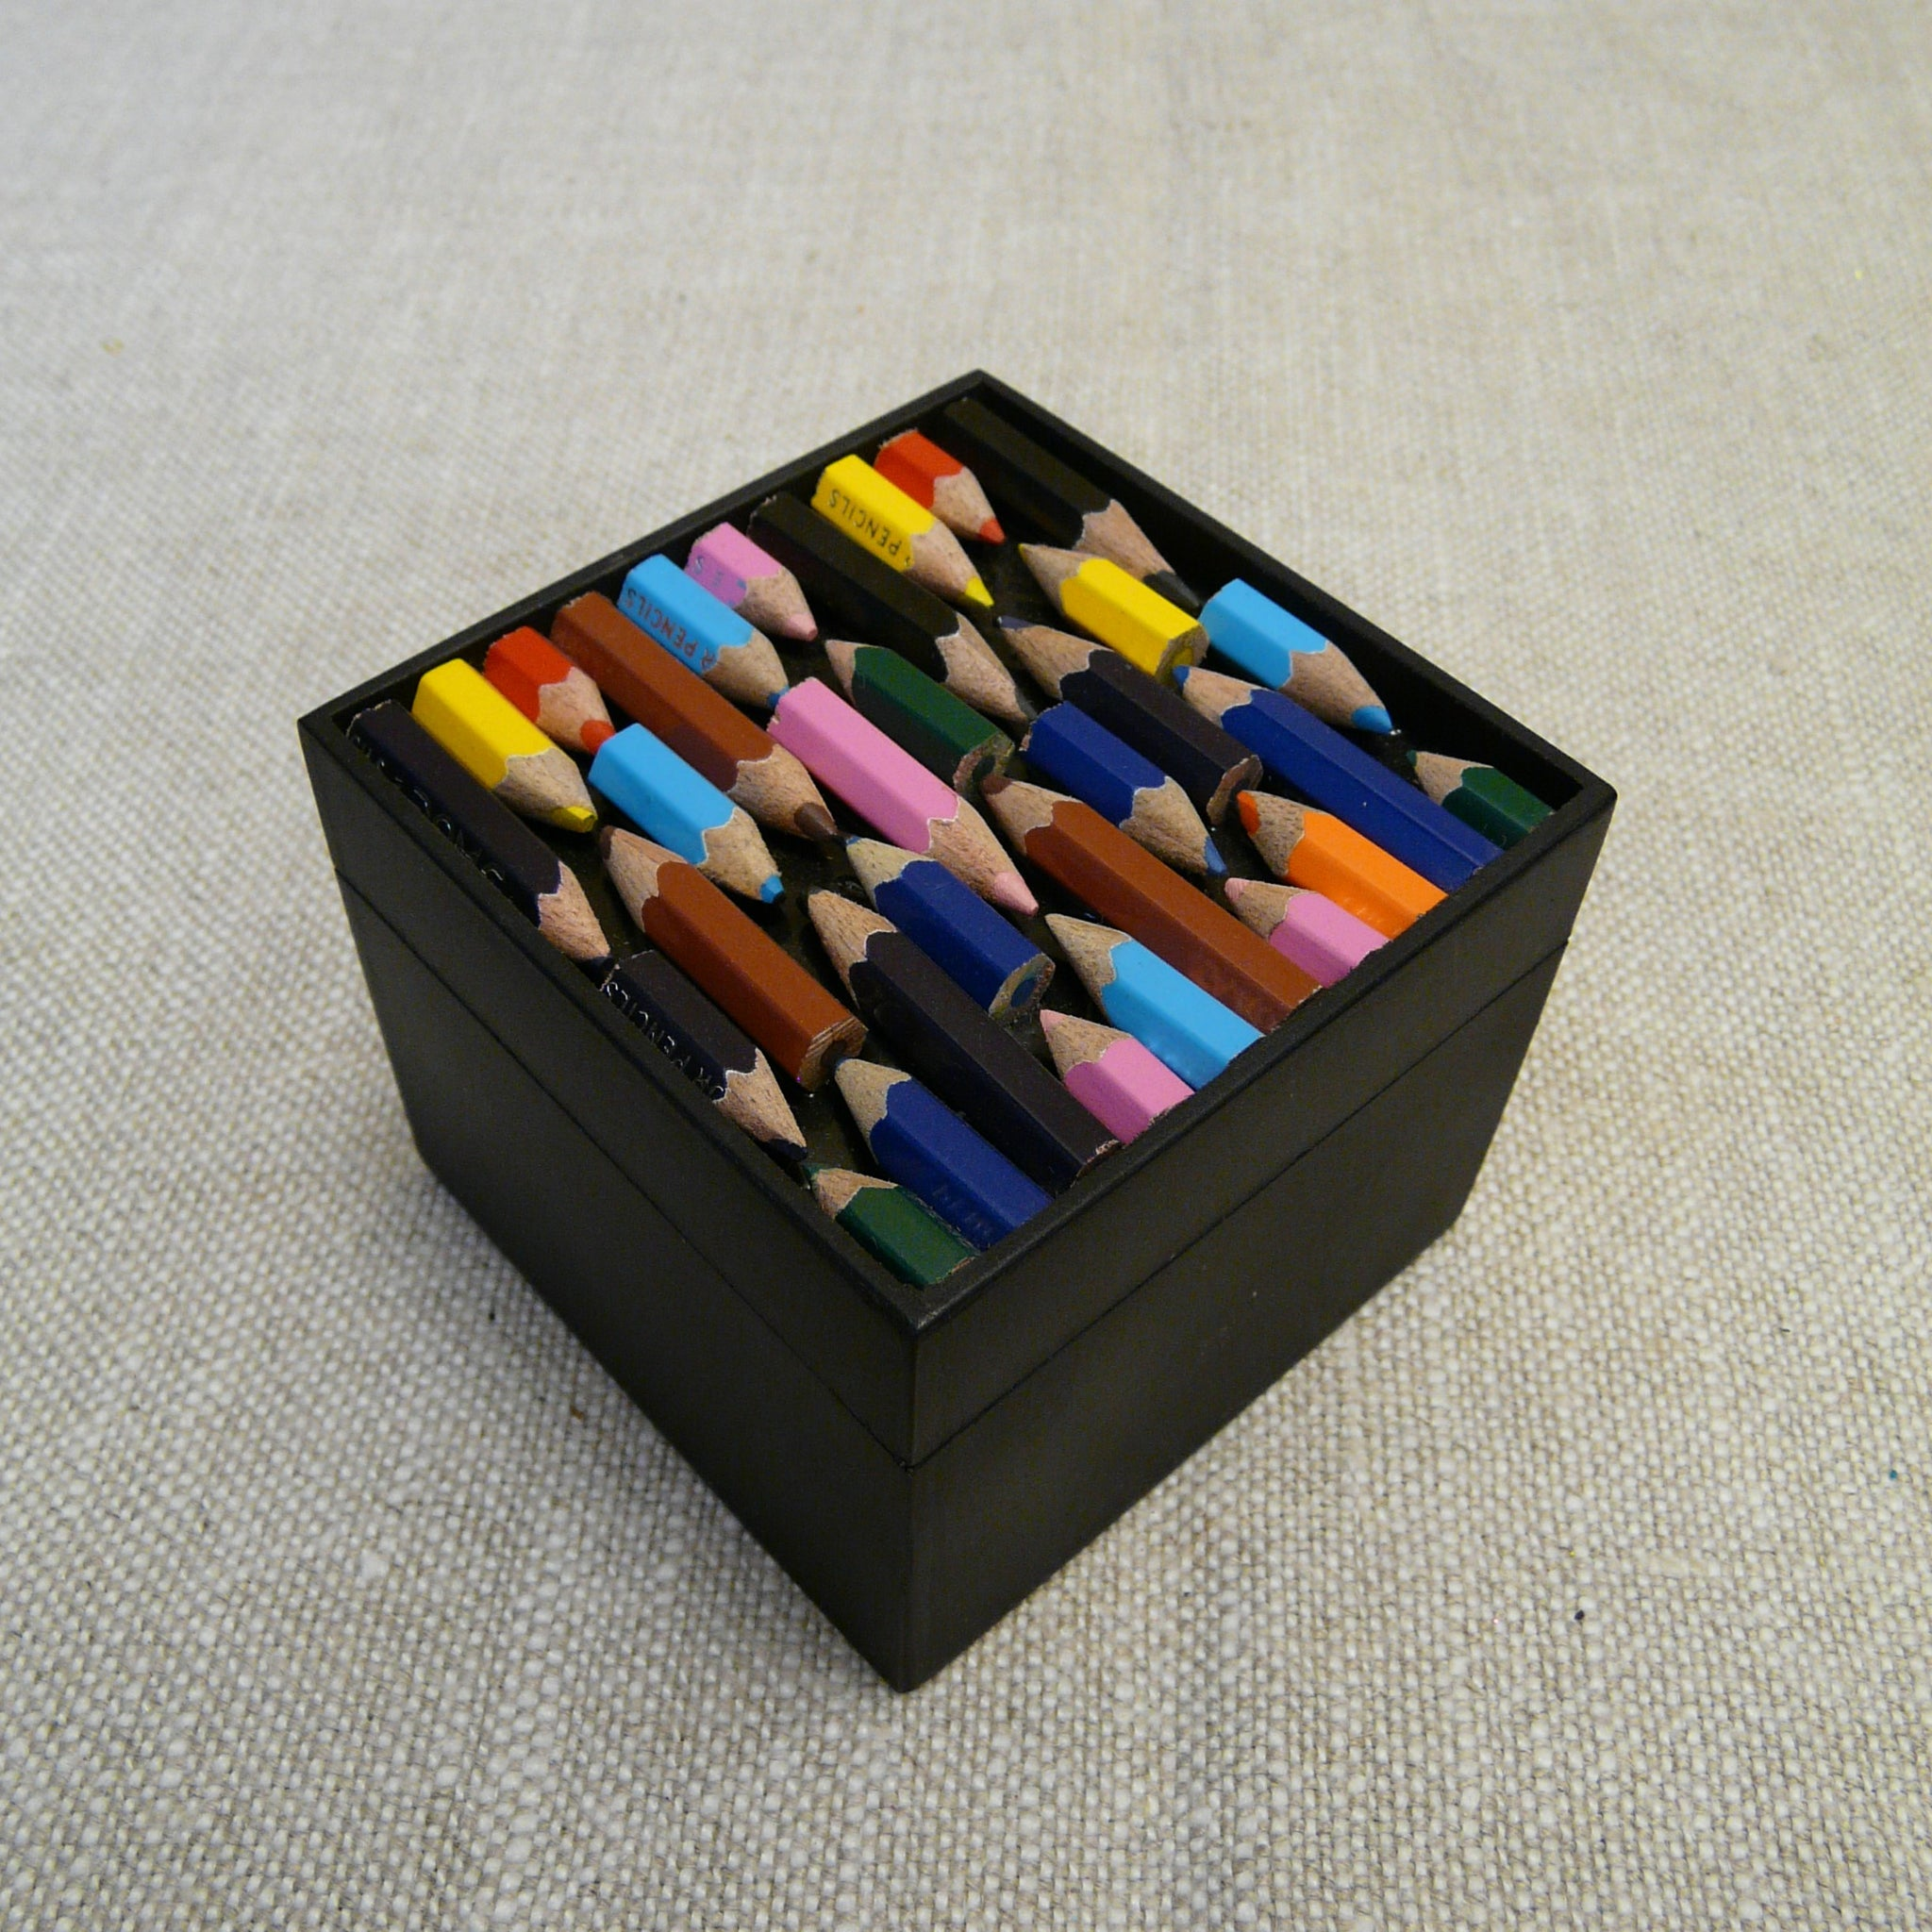 429-fairtrade-upcycled-crayon-black-medium-square-box